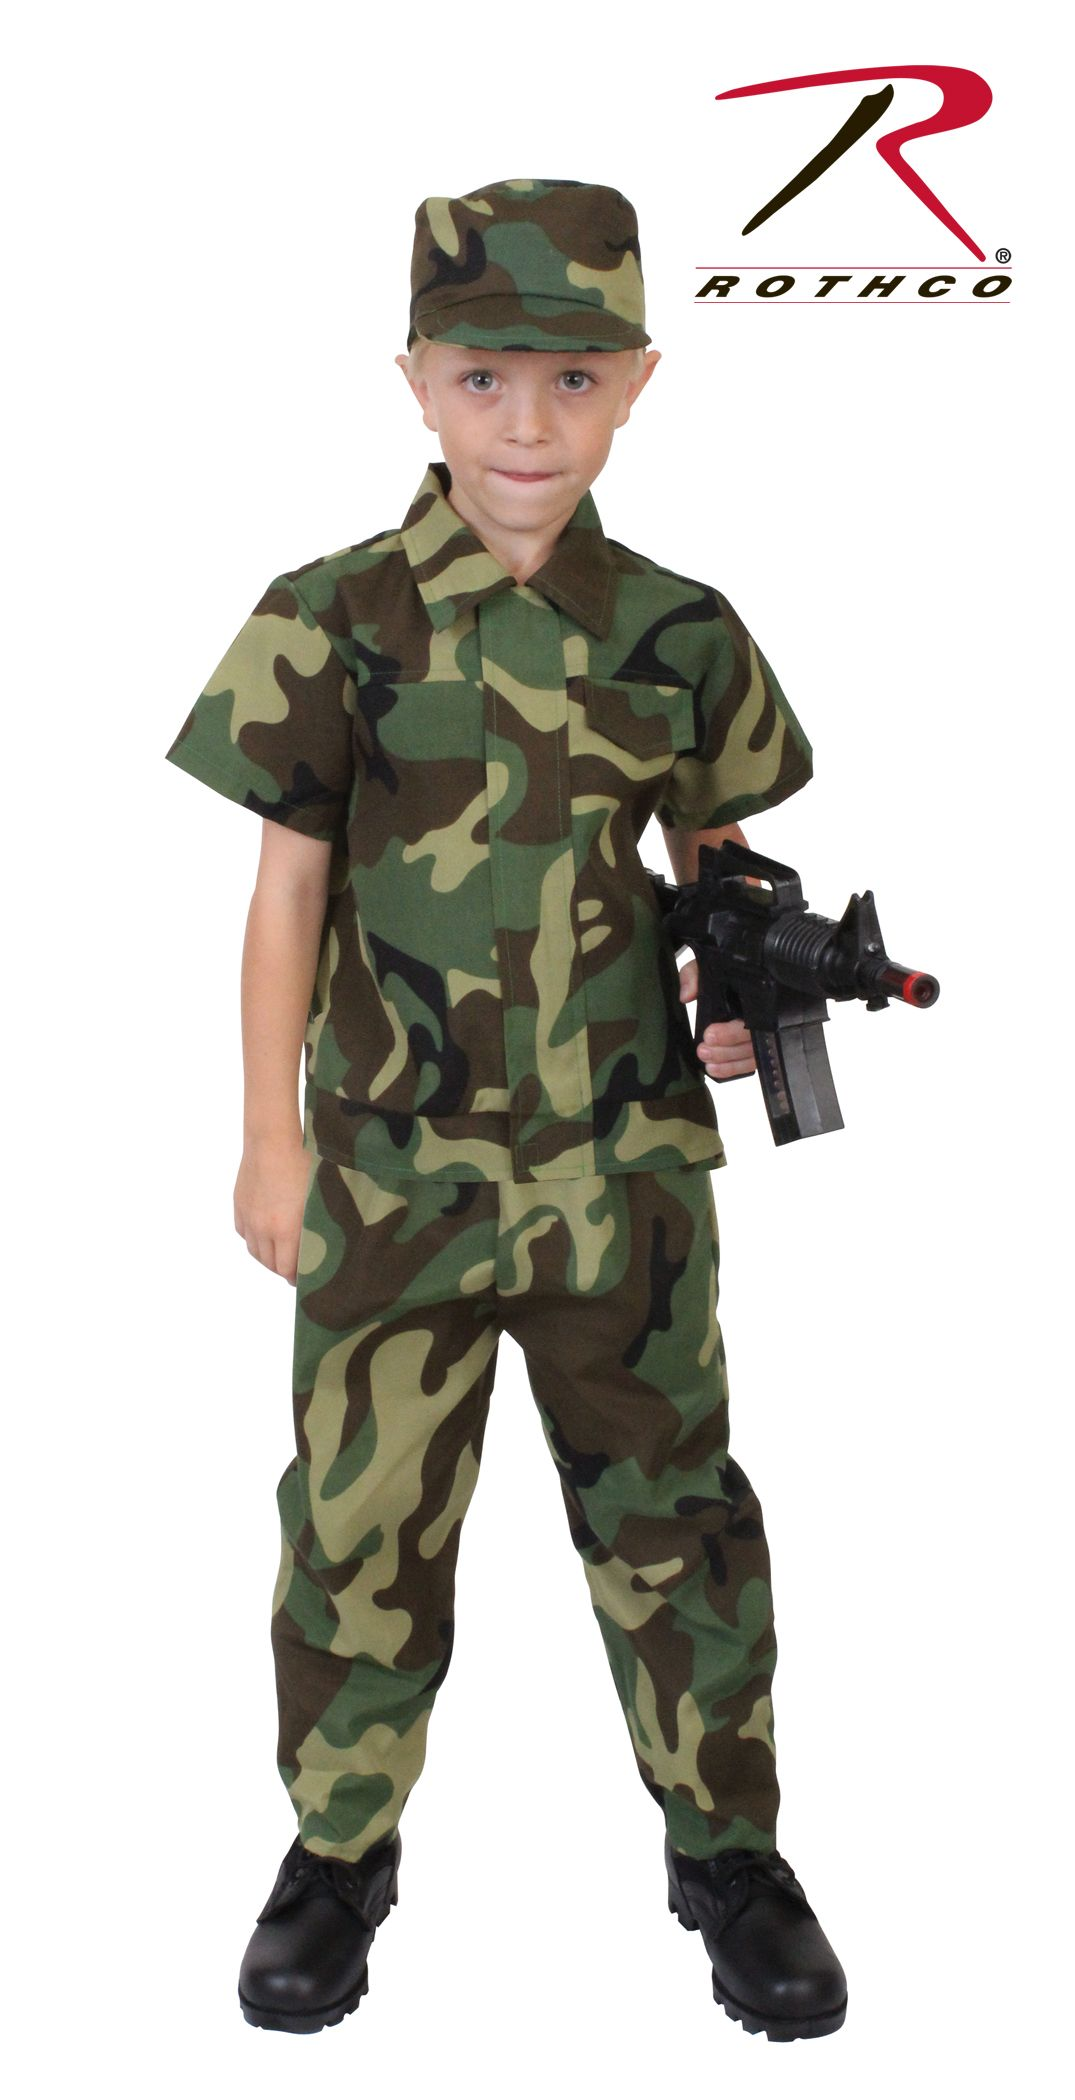 rothco kids camouflage soldier costume halloween - Boys Army Halloween Costumes